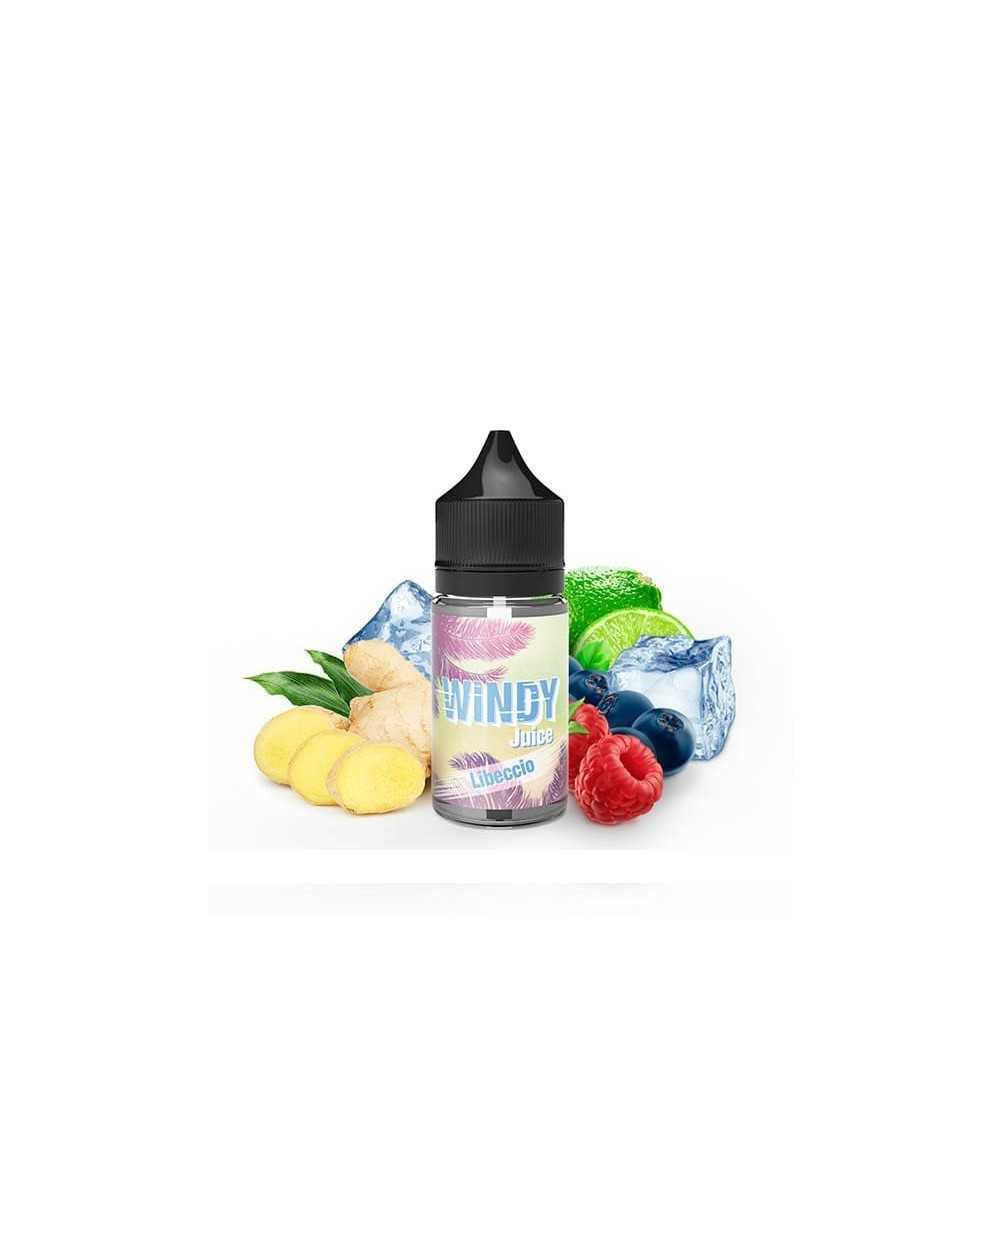 Concentrated aroma Libeccio 30ml - Windy Juice by e.Tasty-1